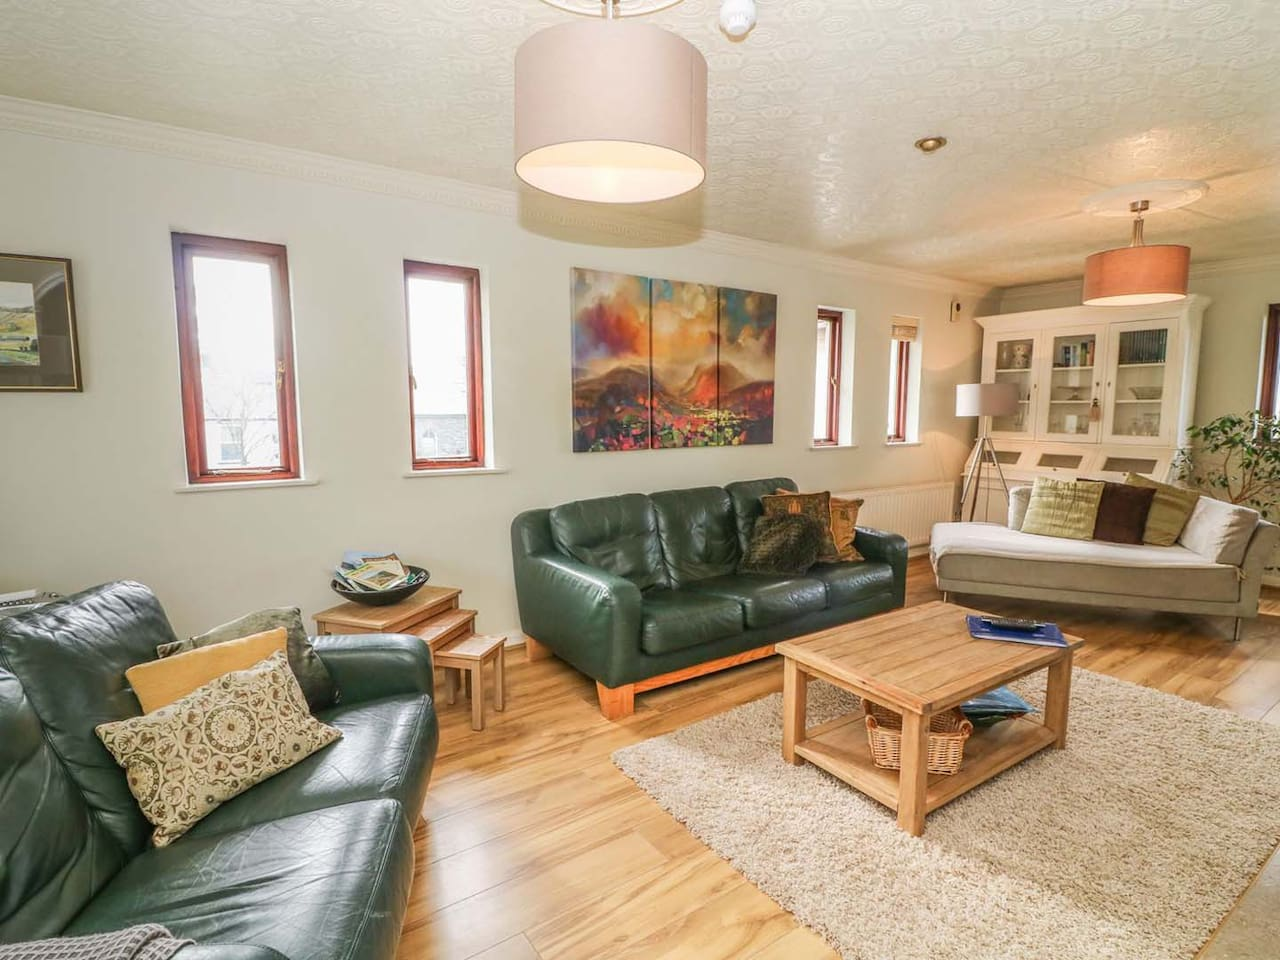 Large Comfortable Lounge seating for 7 with mountain views and glass desk with chair for laptop etc.